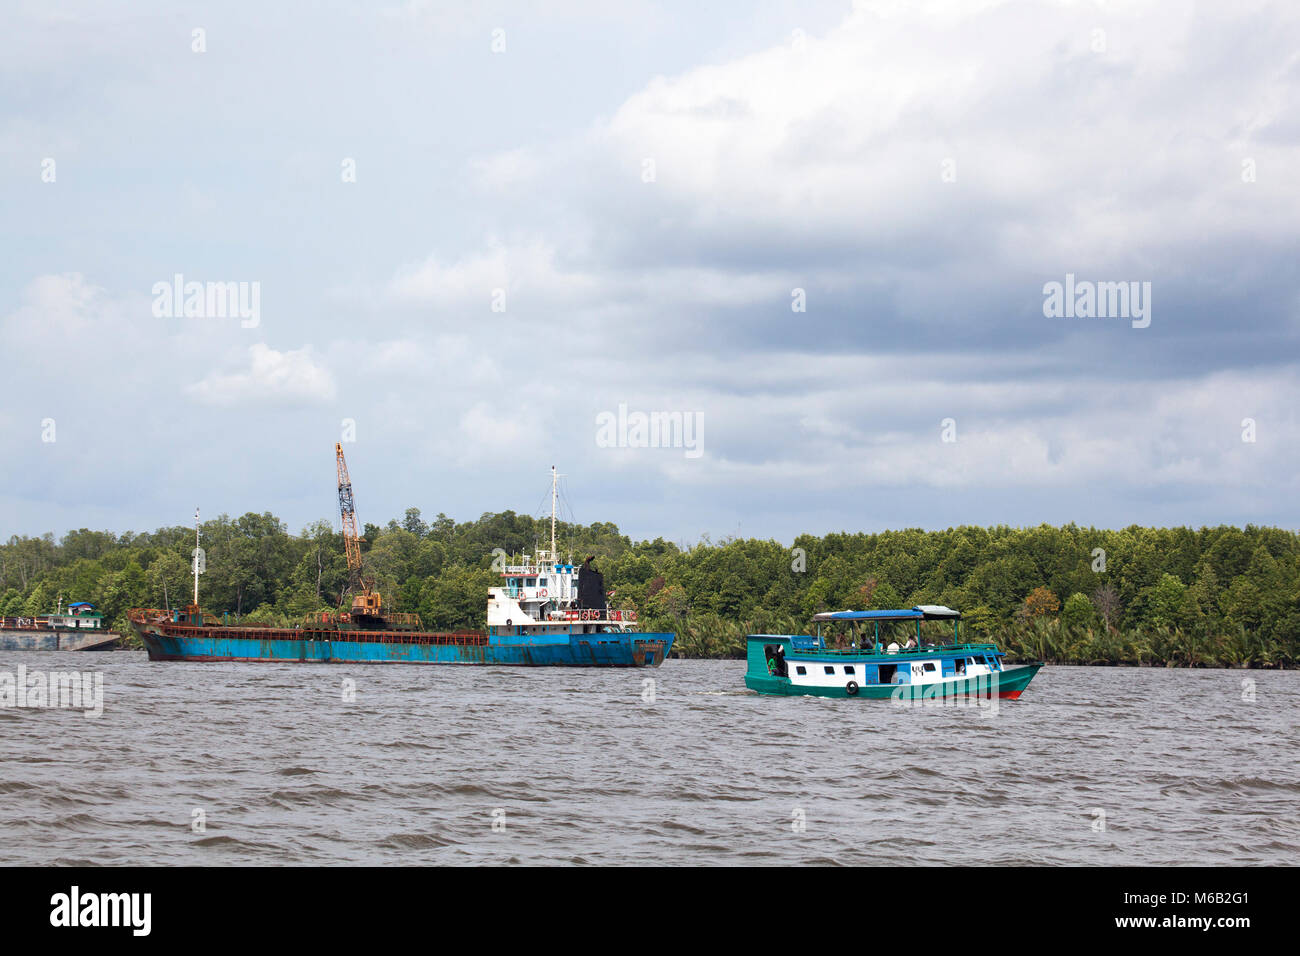 Klotok, a traditional river boat on the Kumai River leaving the port of Kumai in central Kalimantan, and industrial - Stock Image